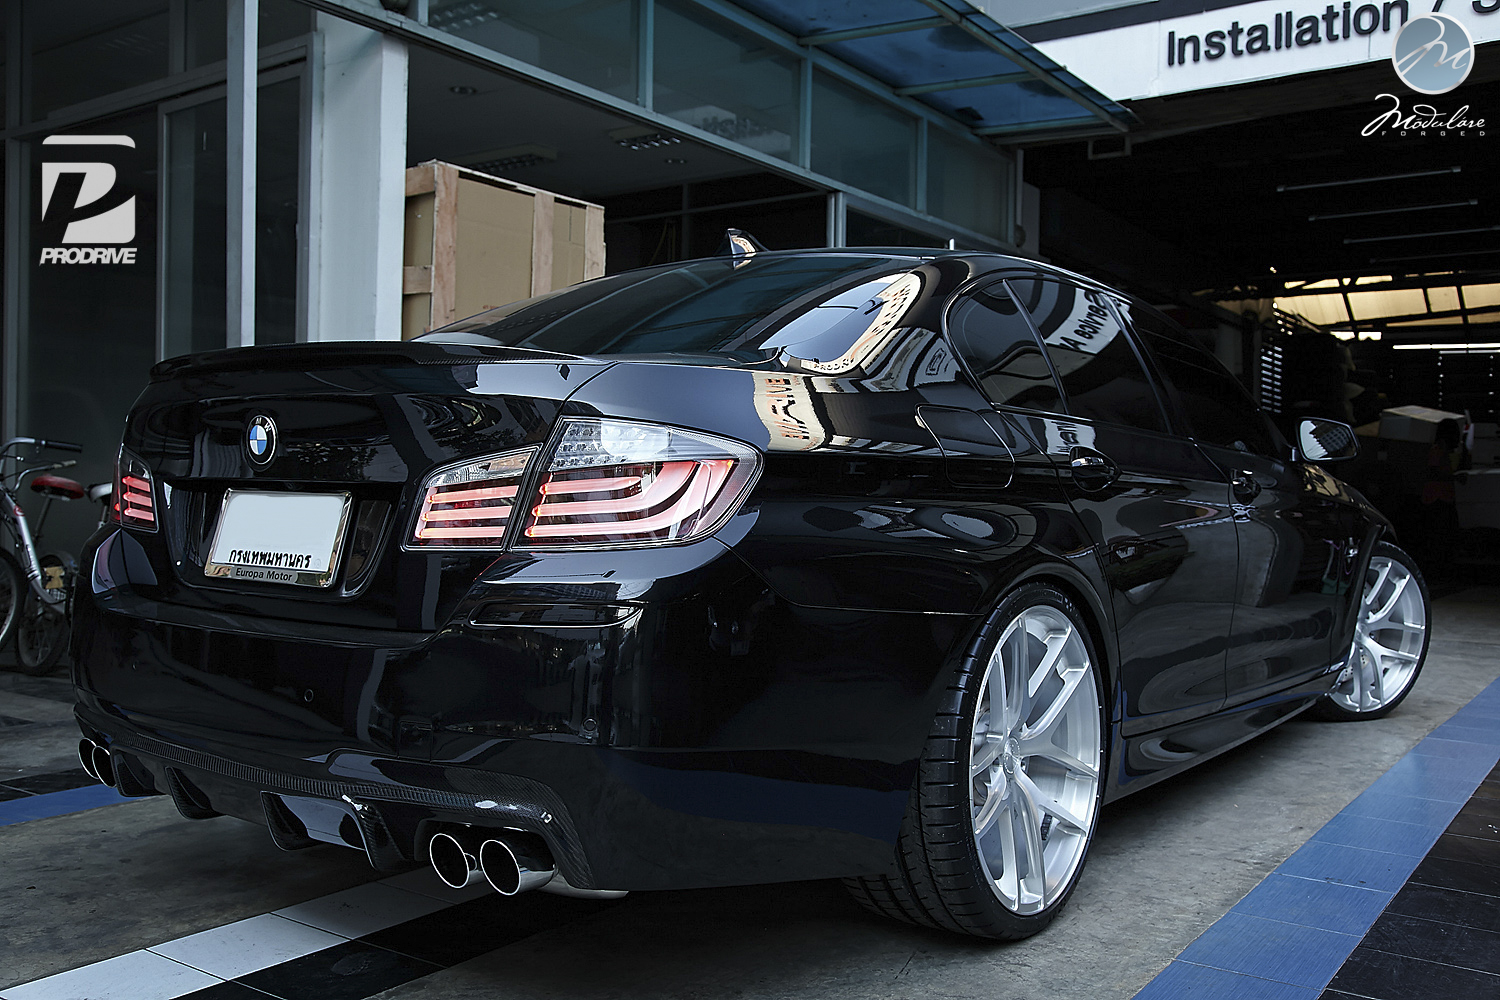 Bmw F10 550i Has Modulare Wheels In Bangkok Autoevolution